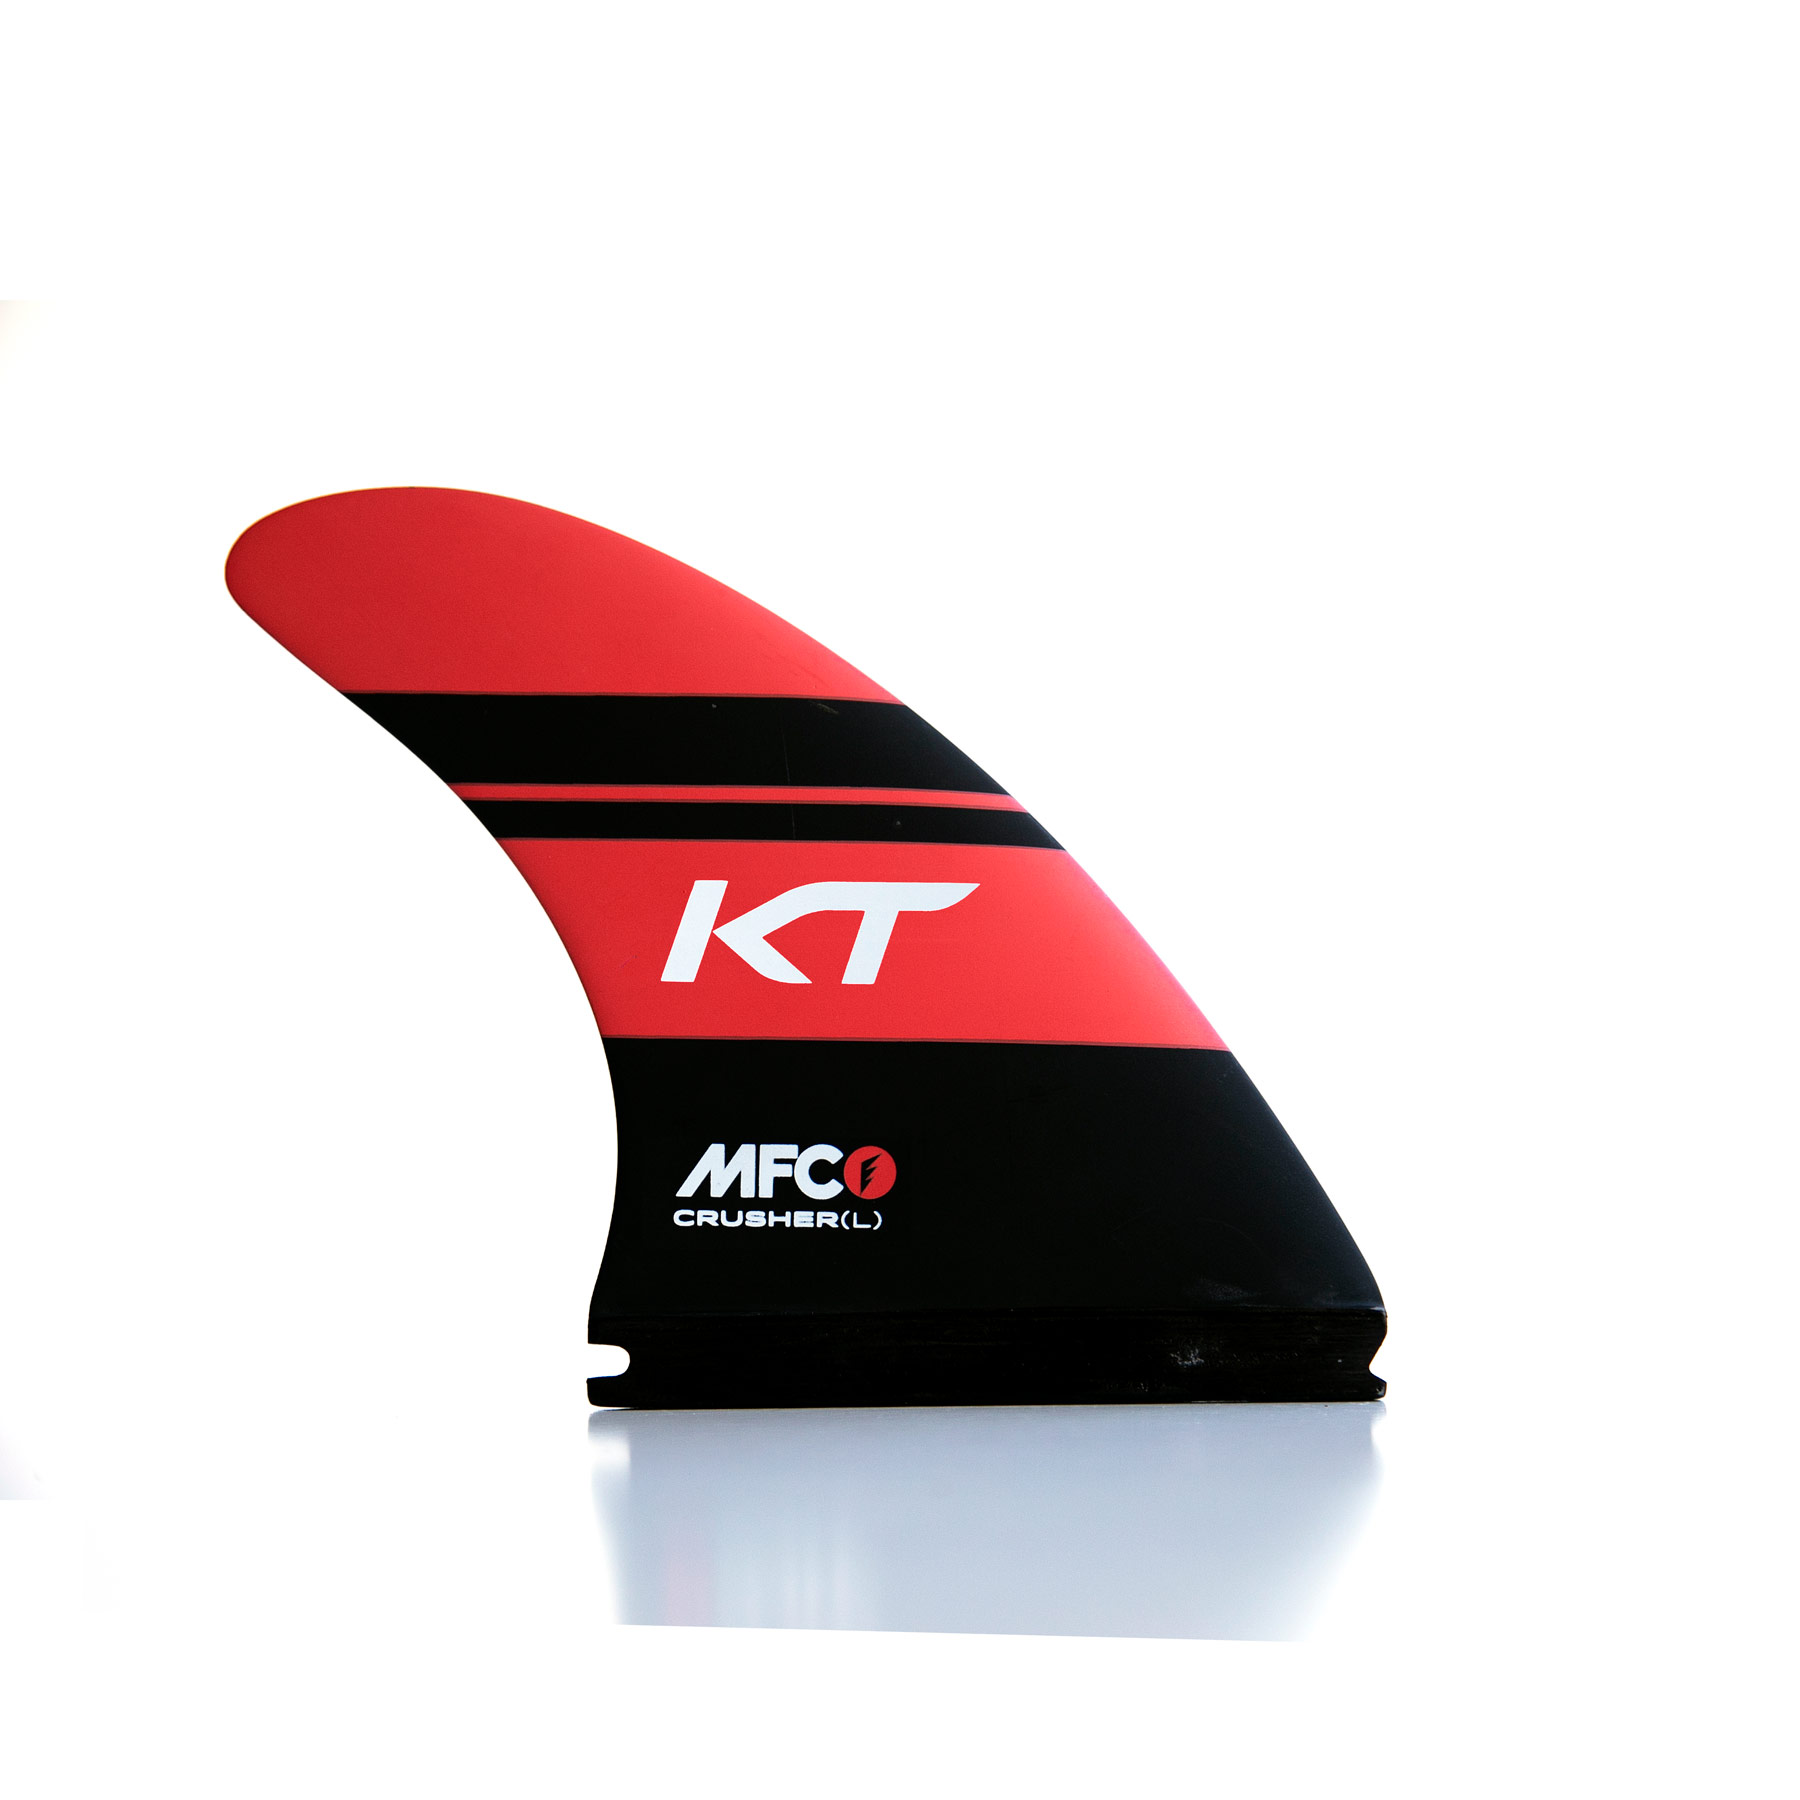 MFC KT Crusher Thruster set